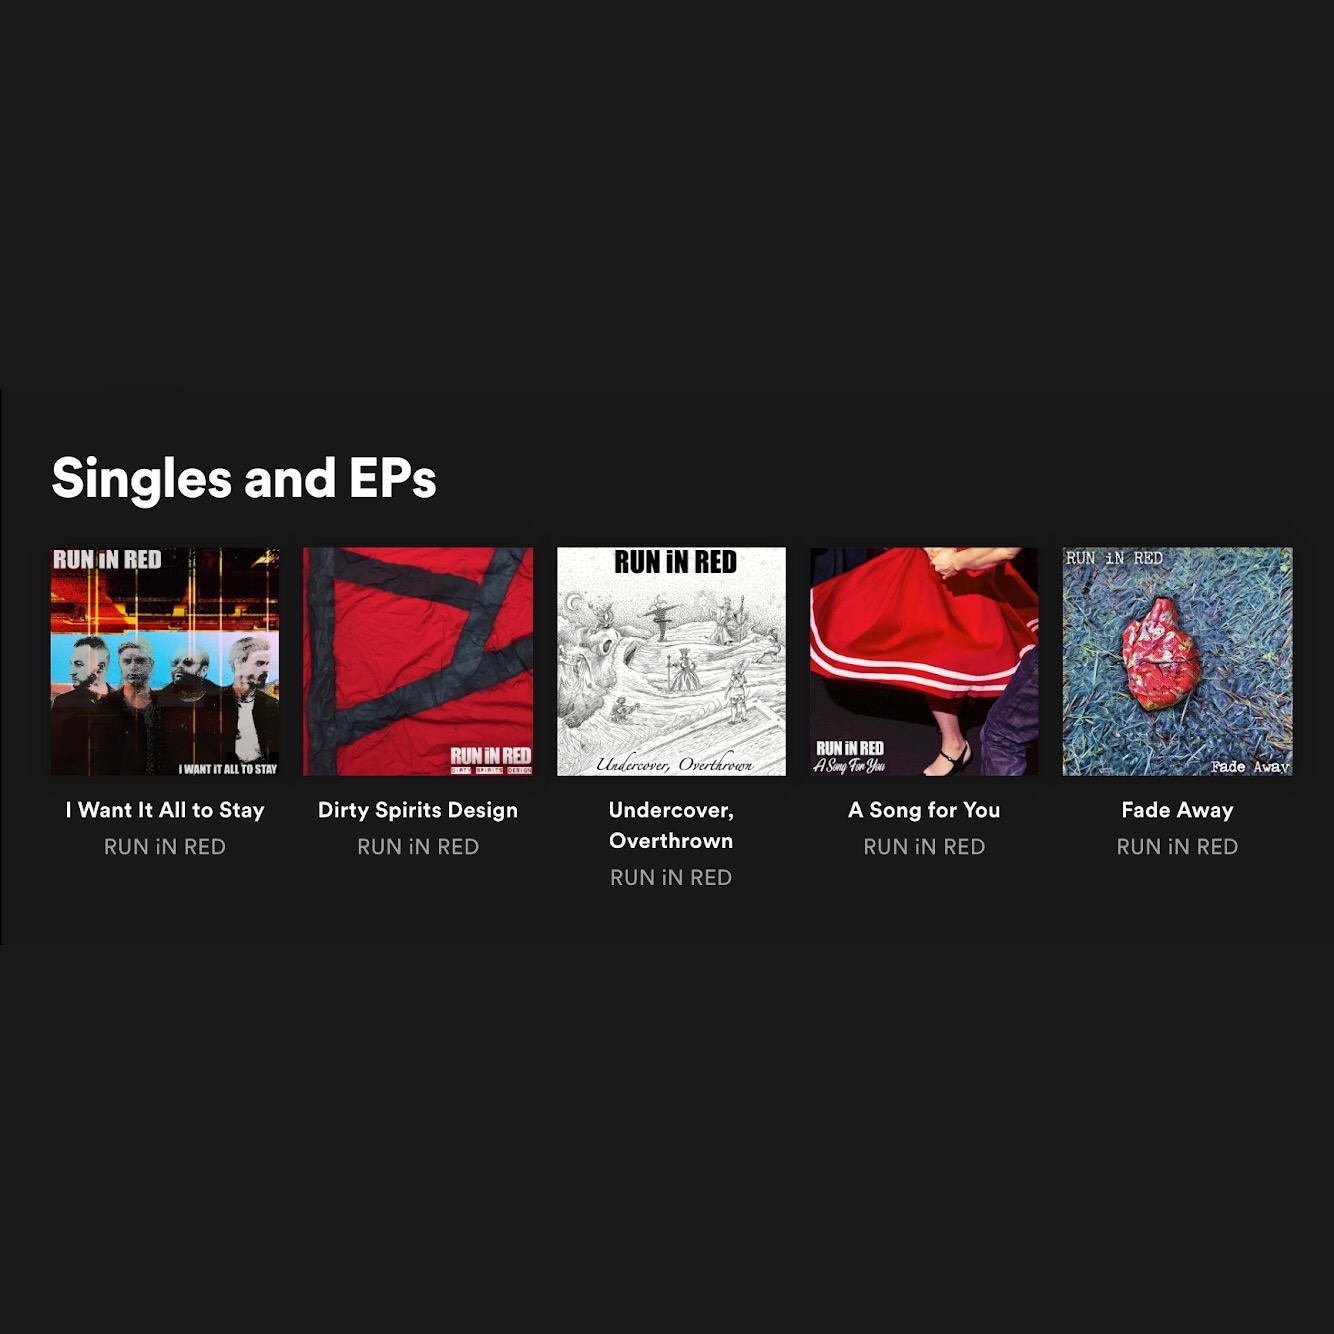 RUN iN RED Spotify